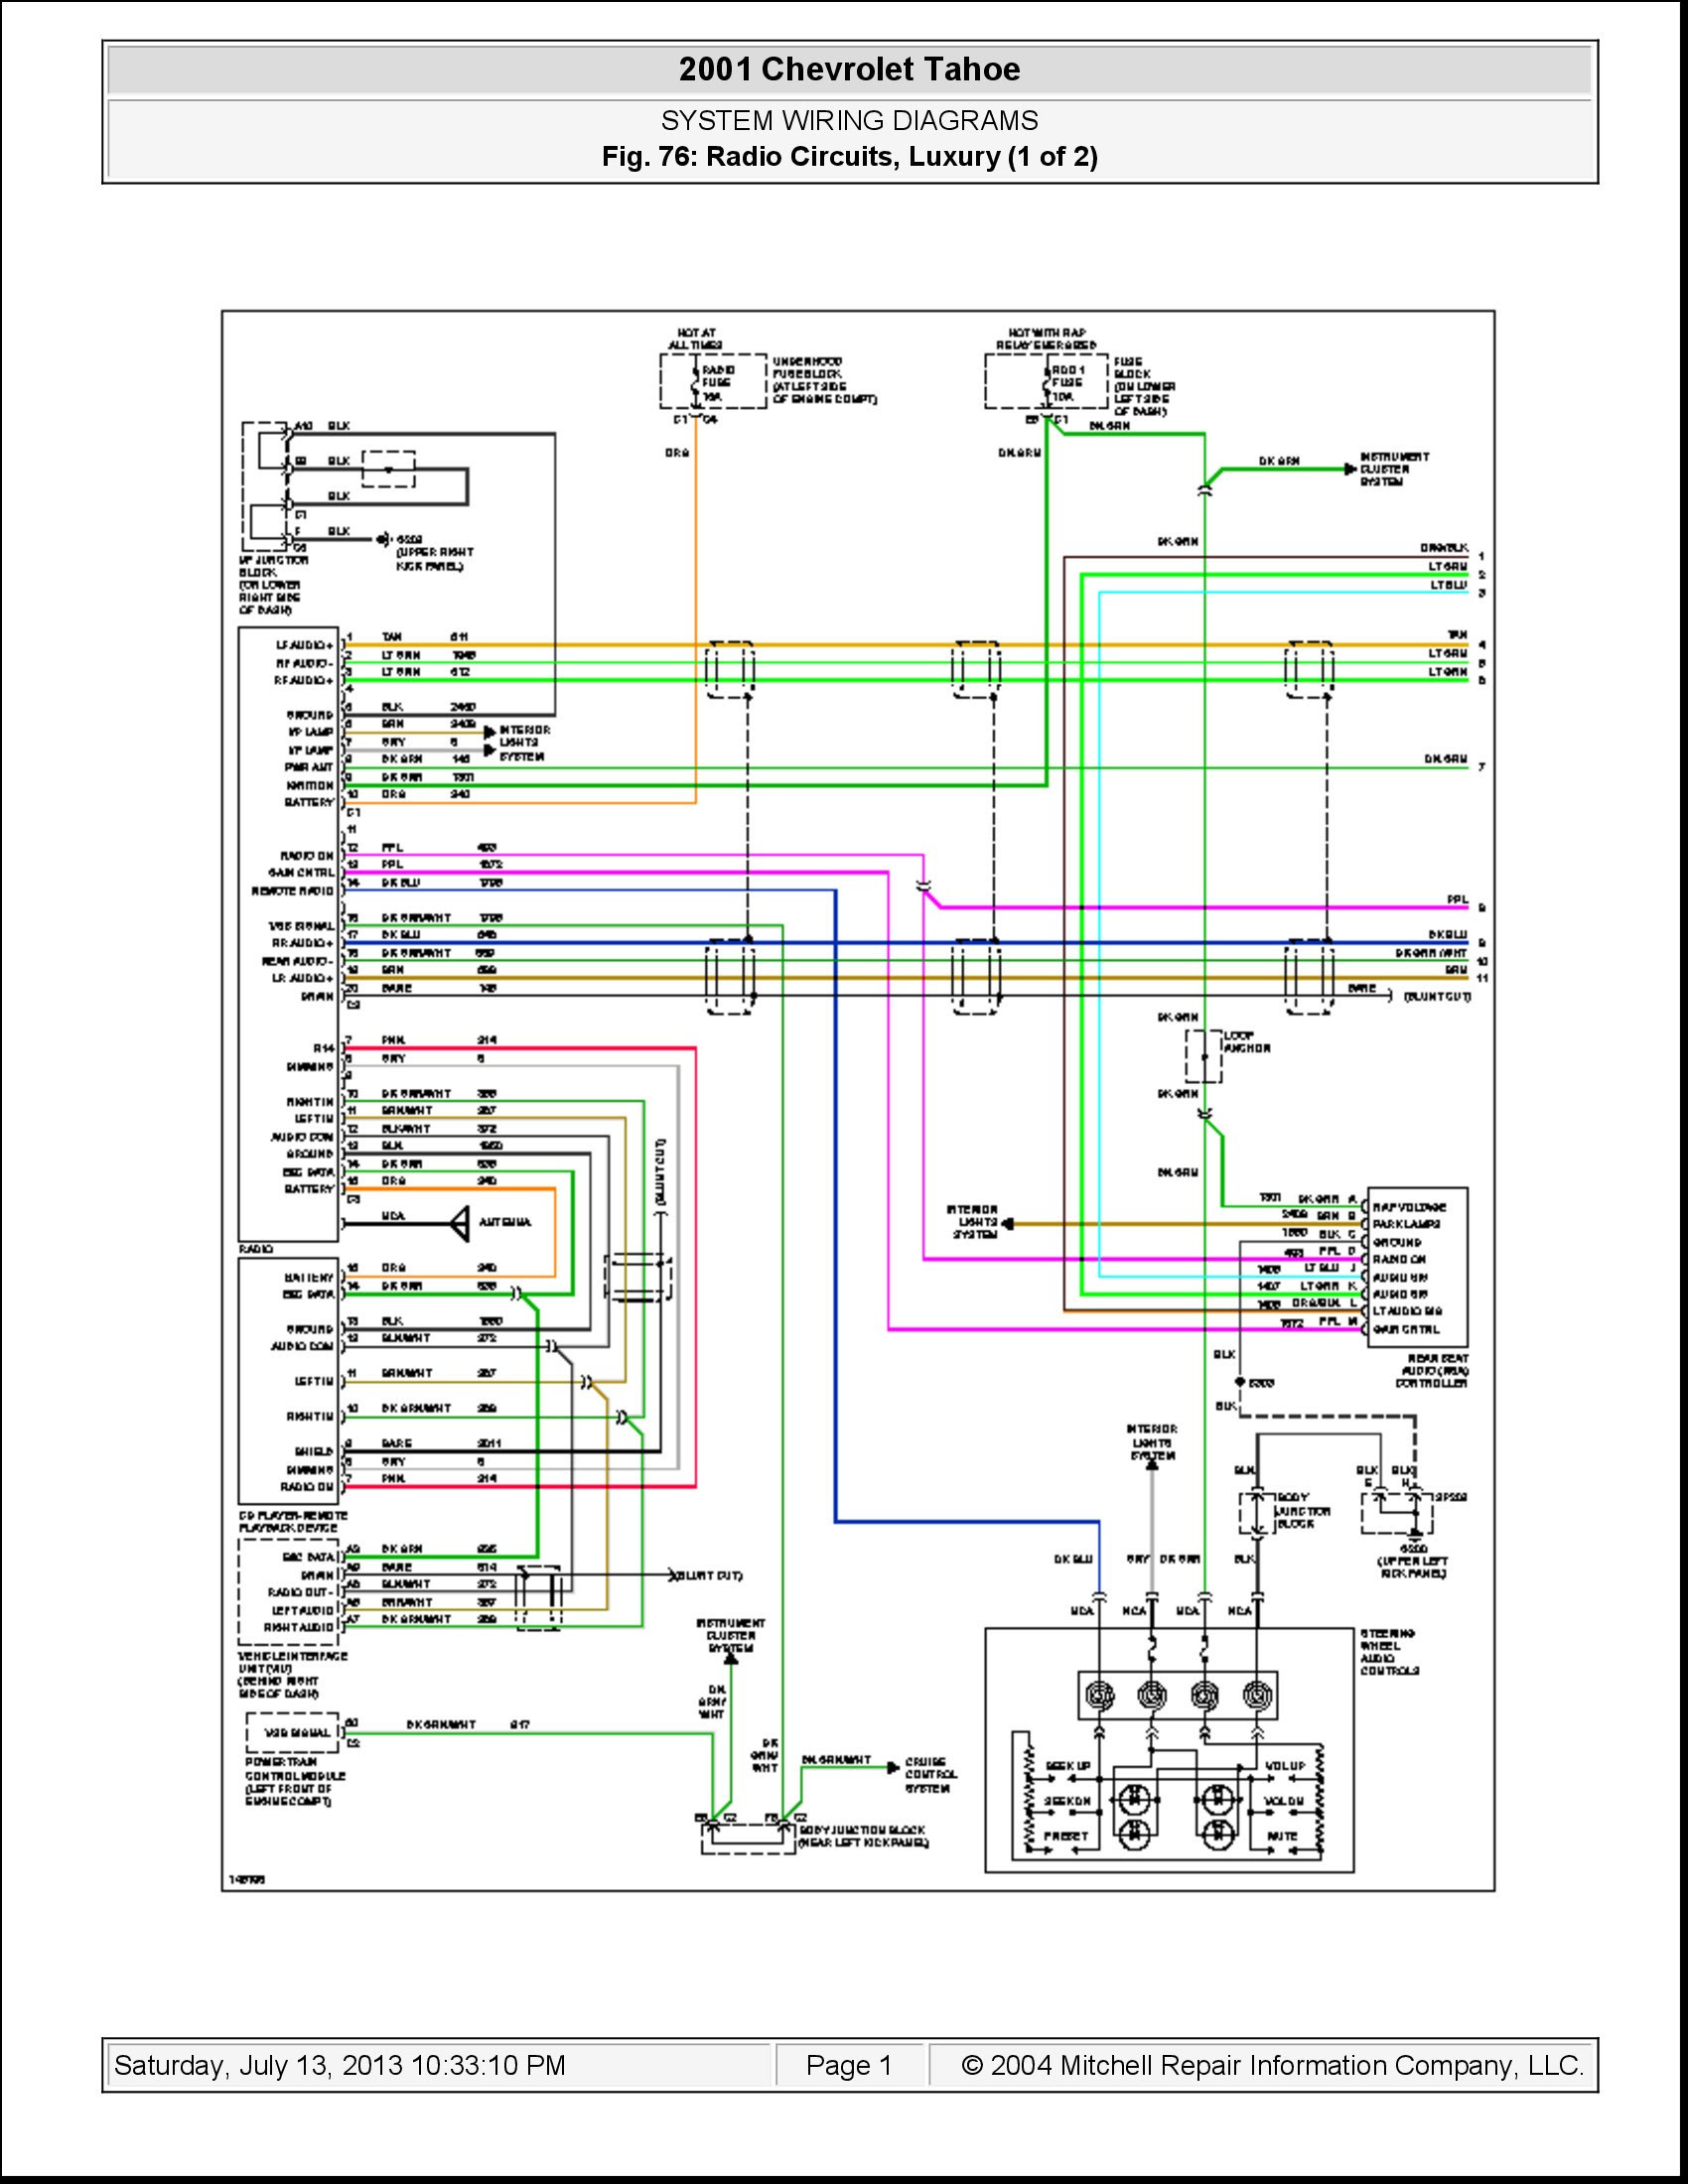 1999 Gmc Yukon Denali Wiring Diagram Wiring Diagrams Auto Gear Found Gear Found Moskitofree It